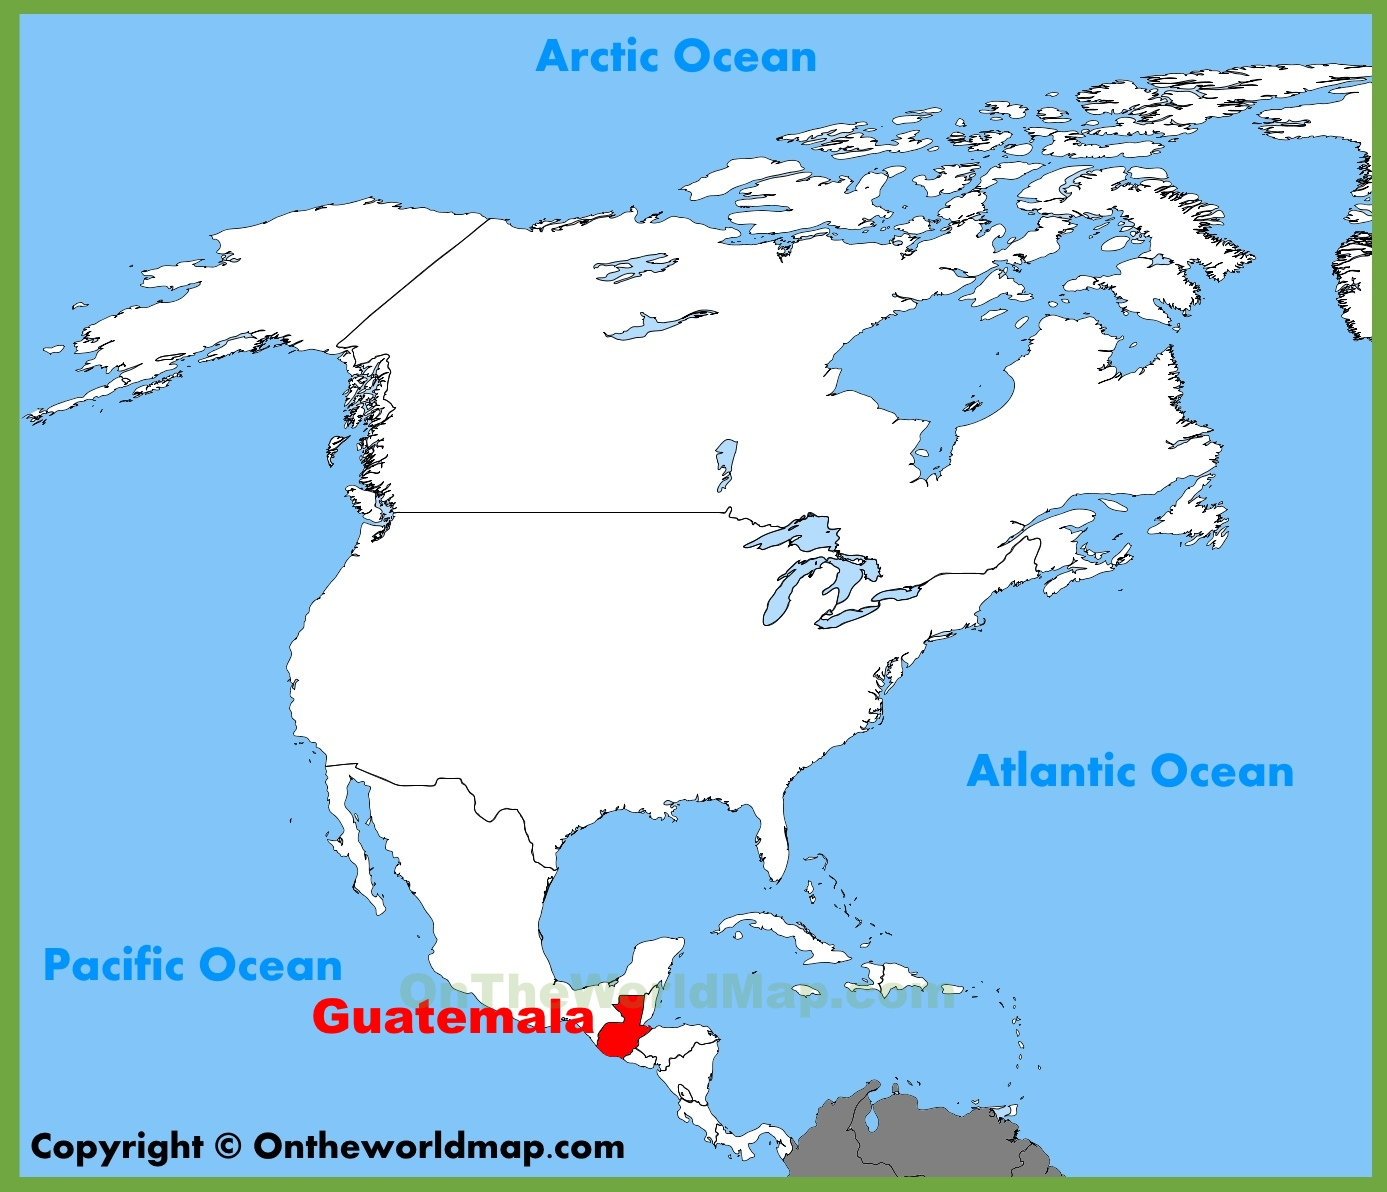 Where Is Guatemala On The Map Guatemala location on the North America map Where Is Guatemala On The Map